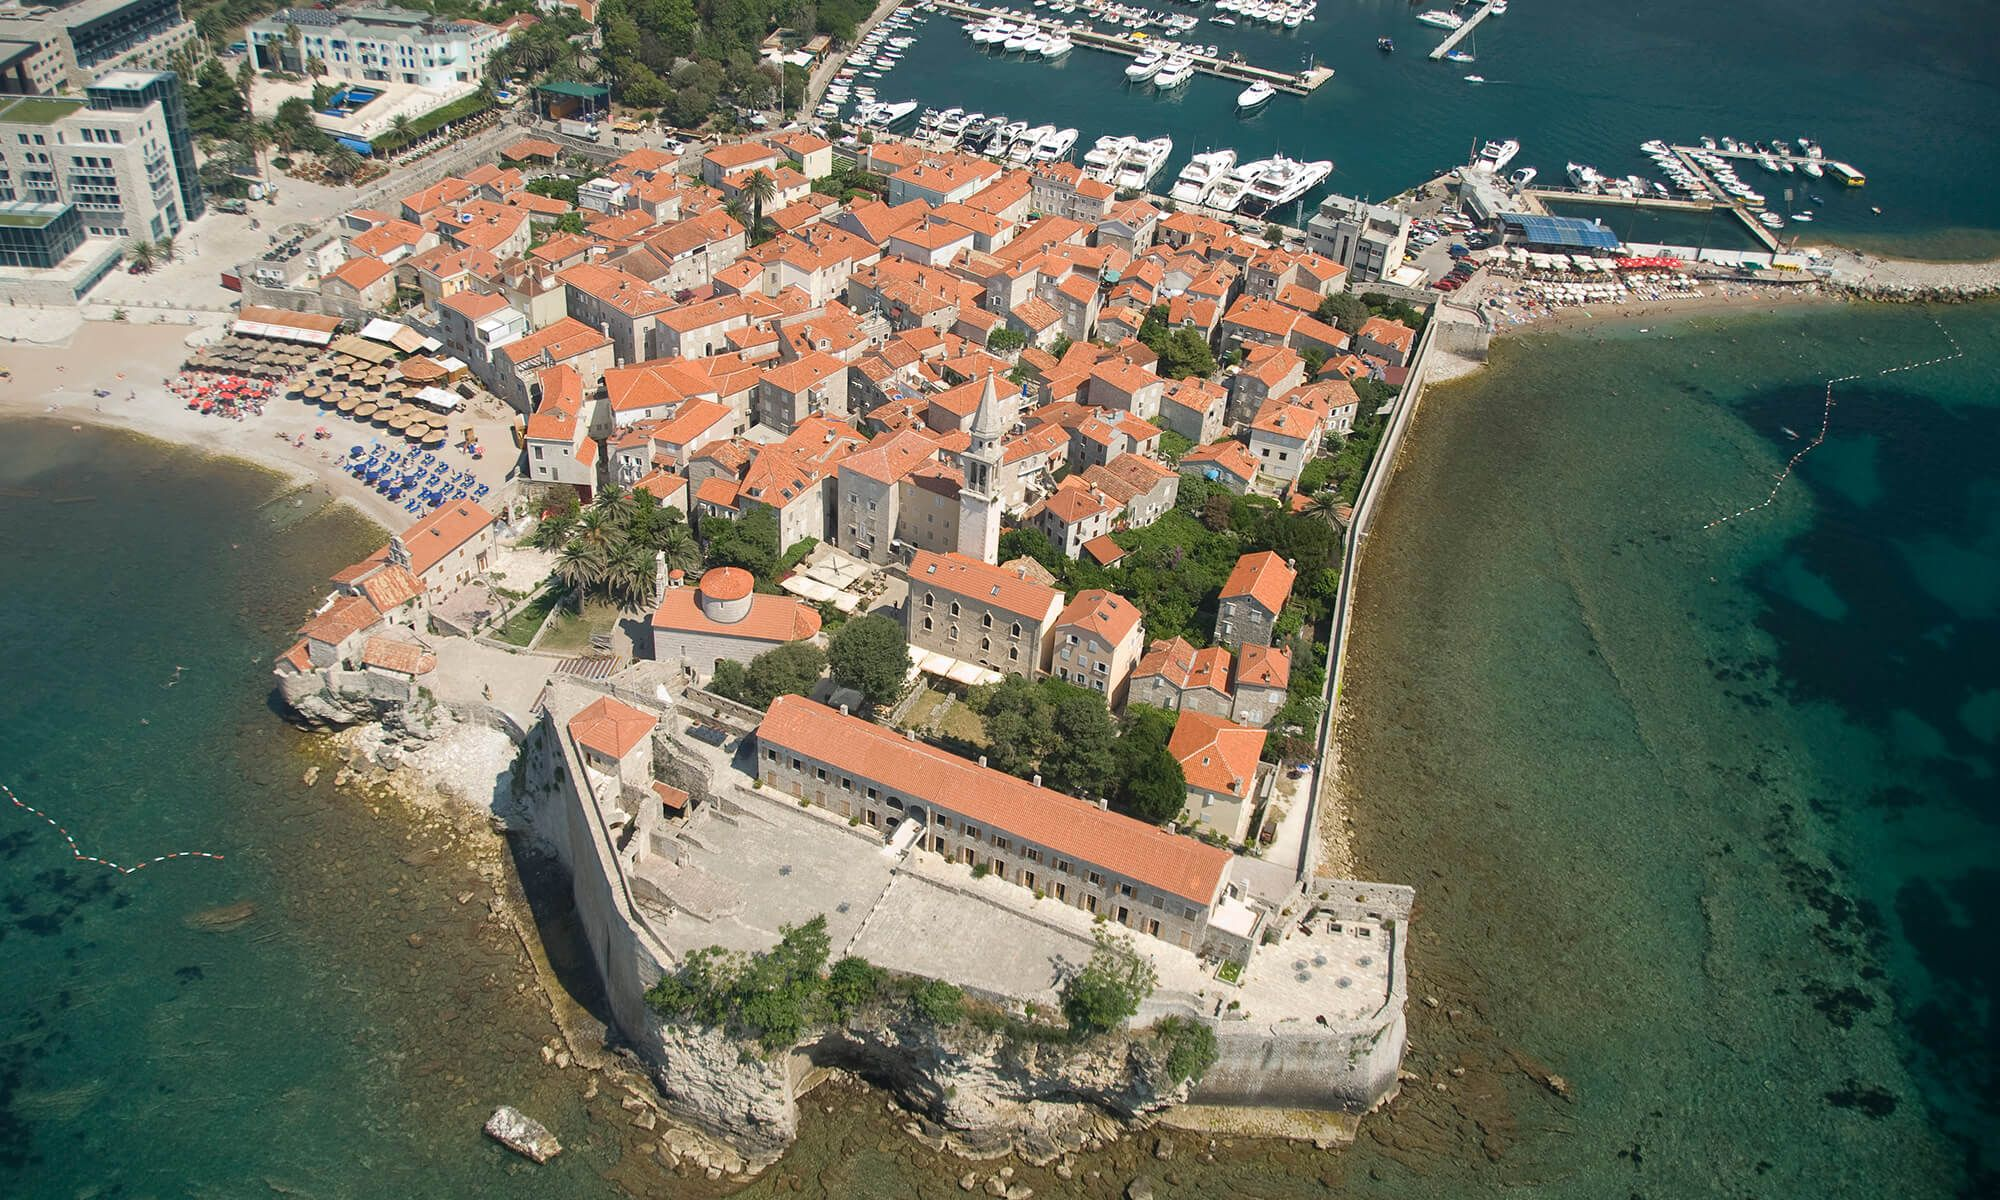 Budva listed as Number One Holiday Destination for Summer 2019 by Macedonian Portal Radar.mk 2